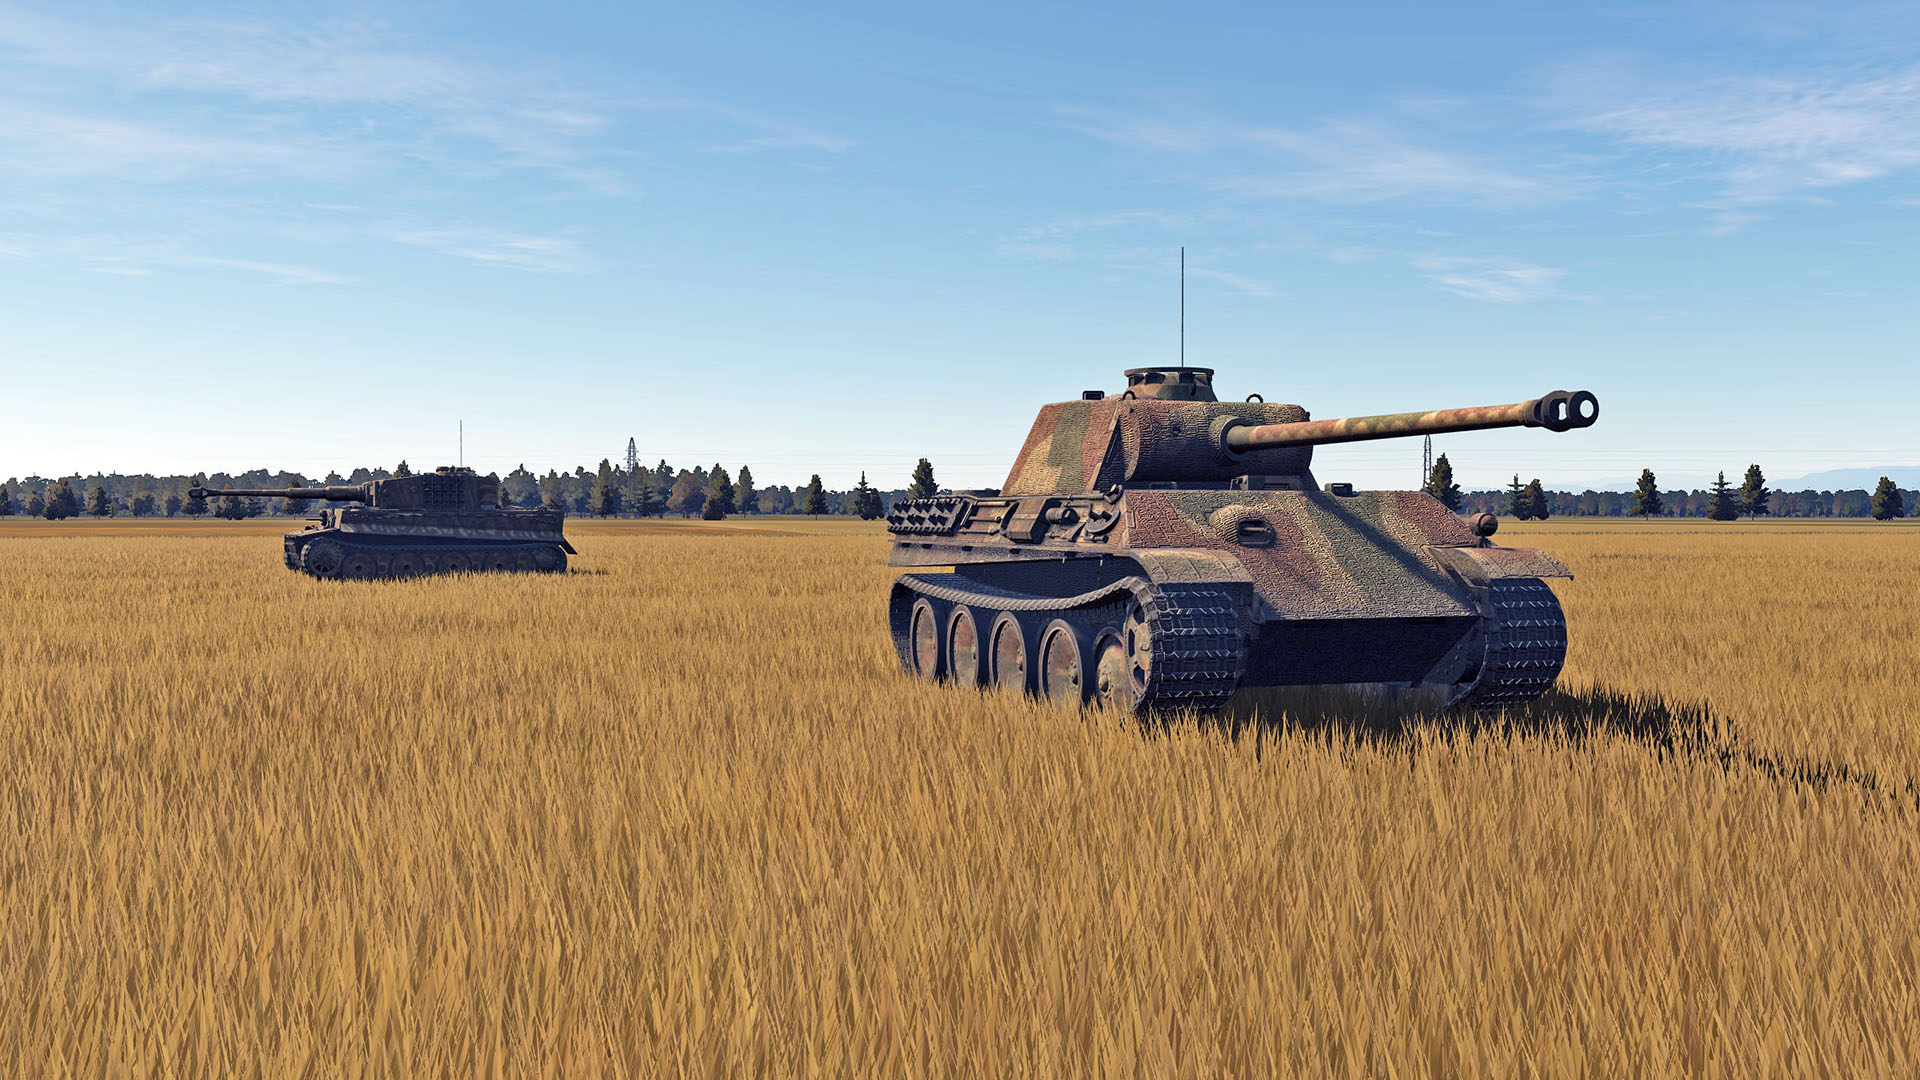 https://www.digitalcombatsimulator.com/upload/iblock/928/Panther.jpg